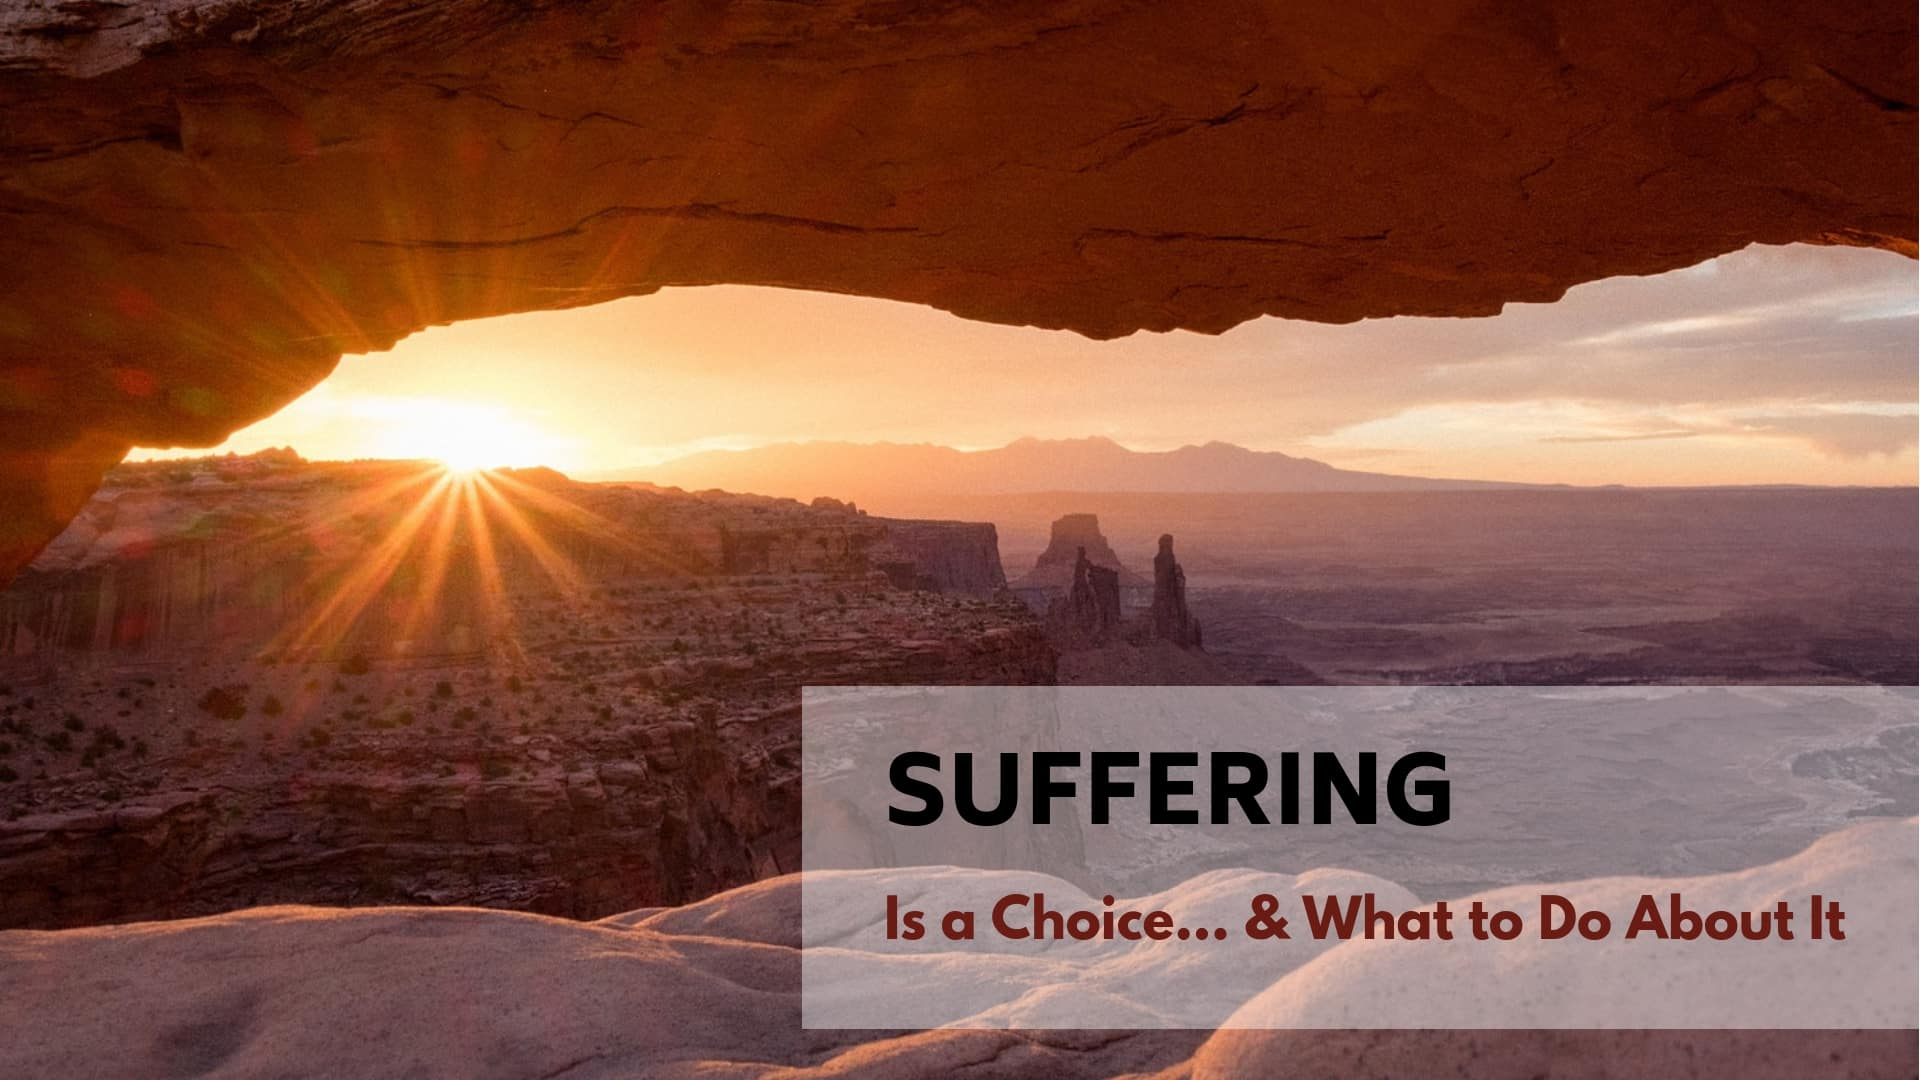 Suffering is a Choice. Turn it Into Soul-Level Healing Instead